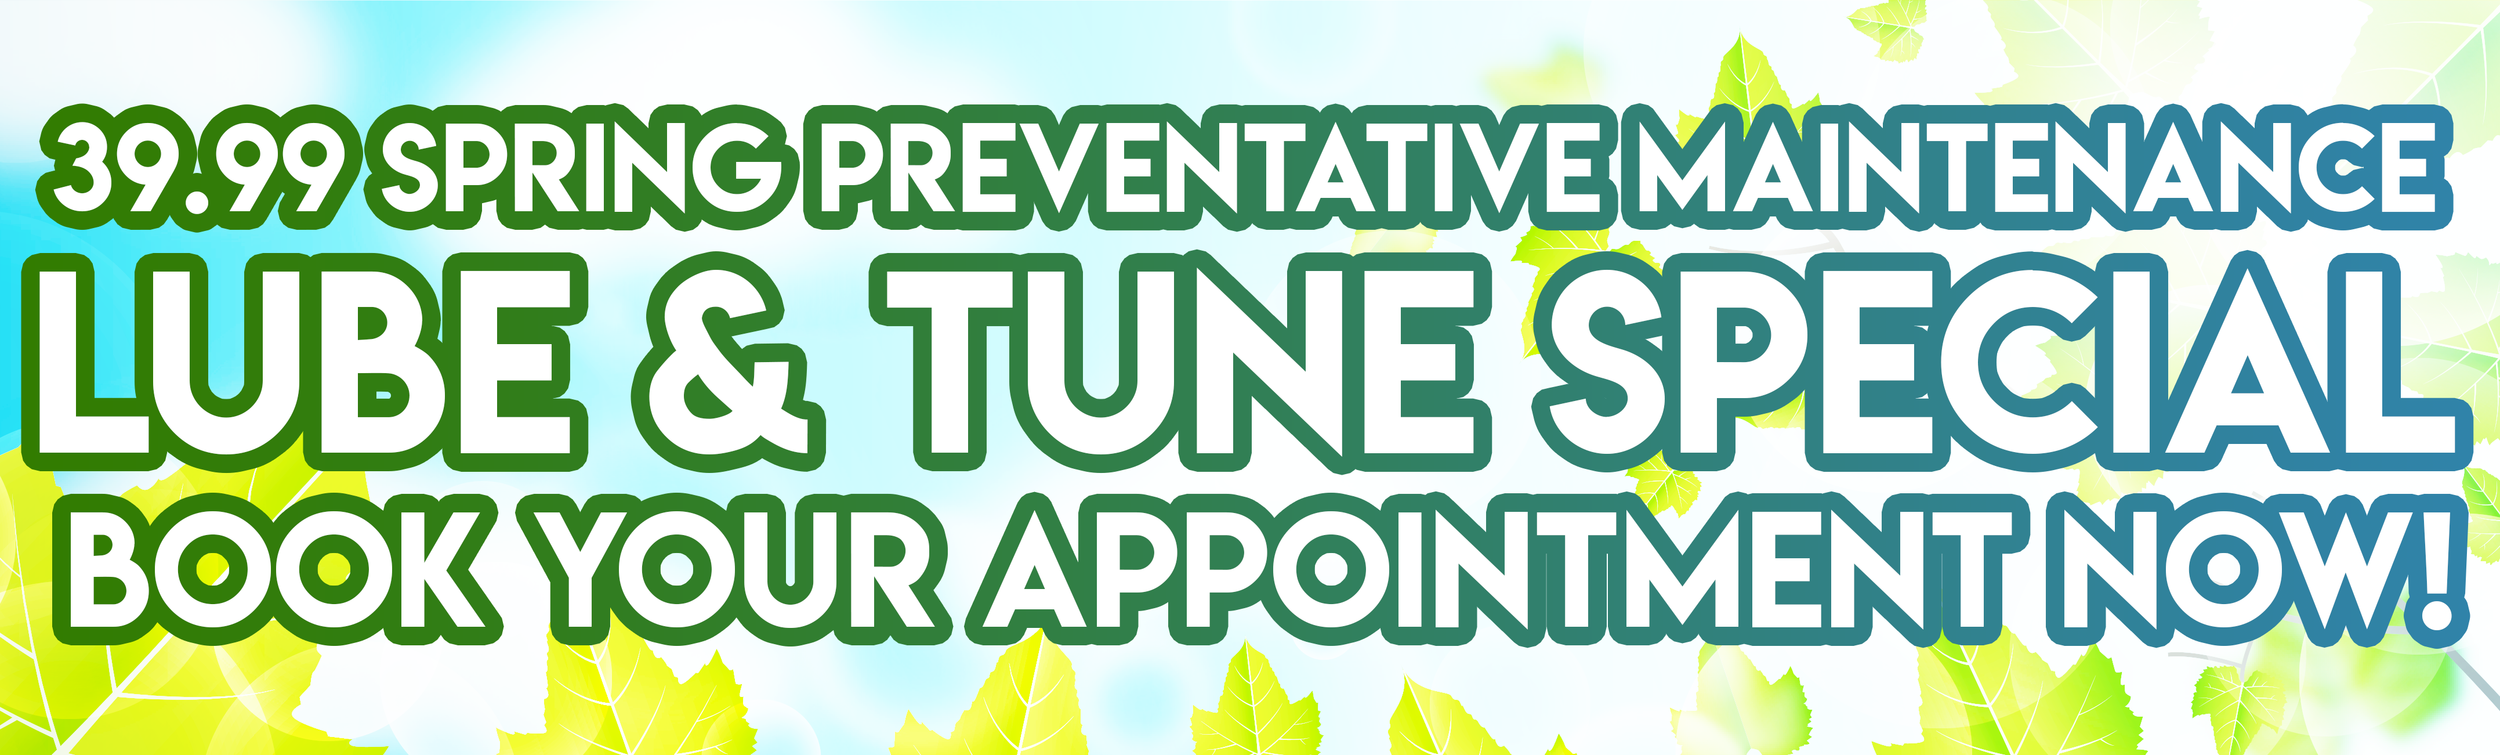 ad_special_spring_39_banner.png